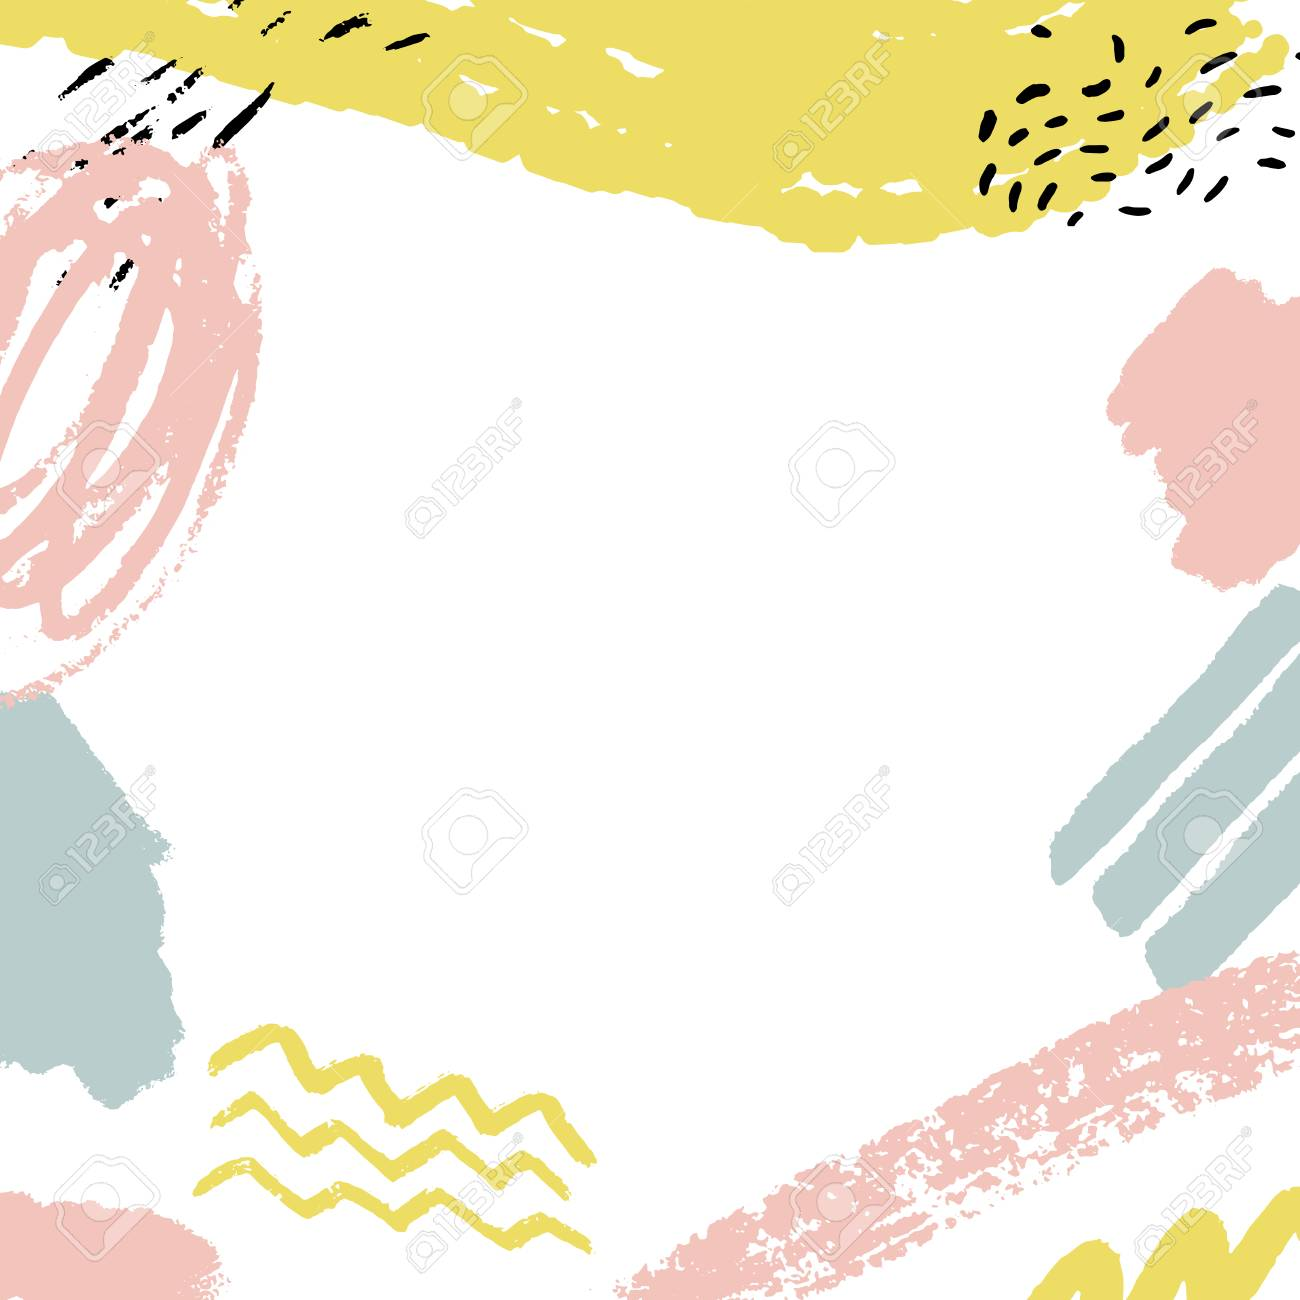 Minimalistic background with paint brush strokes. Hand drawn texture with white, pastel pink and blue colors - 89169150